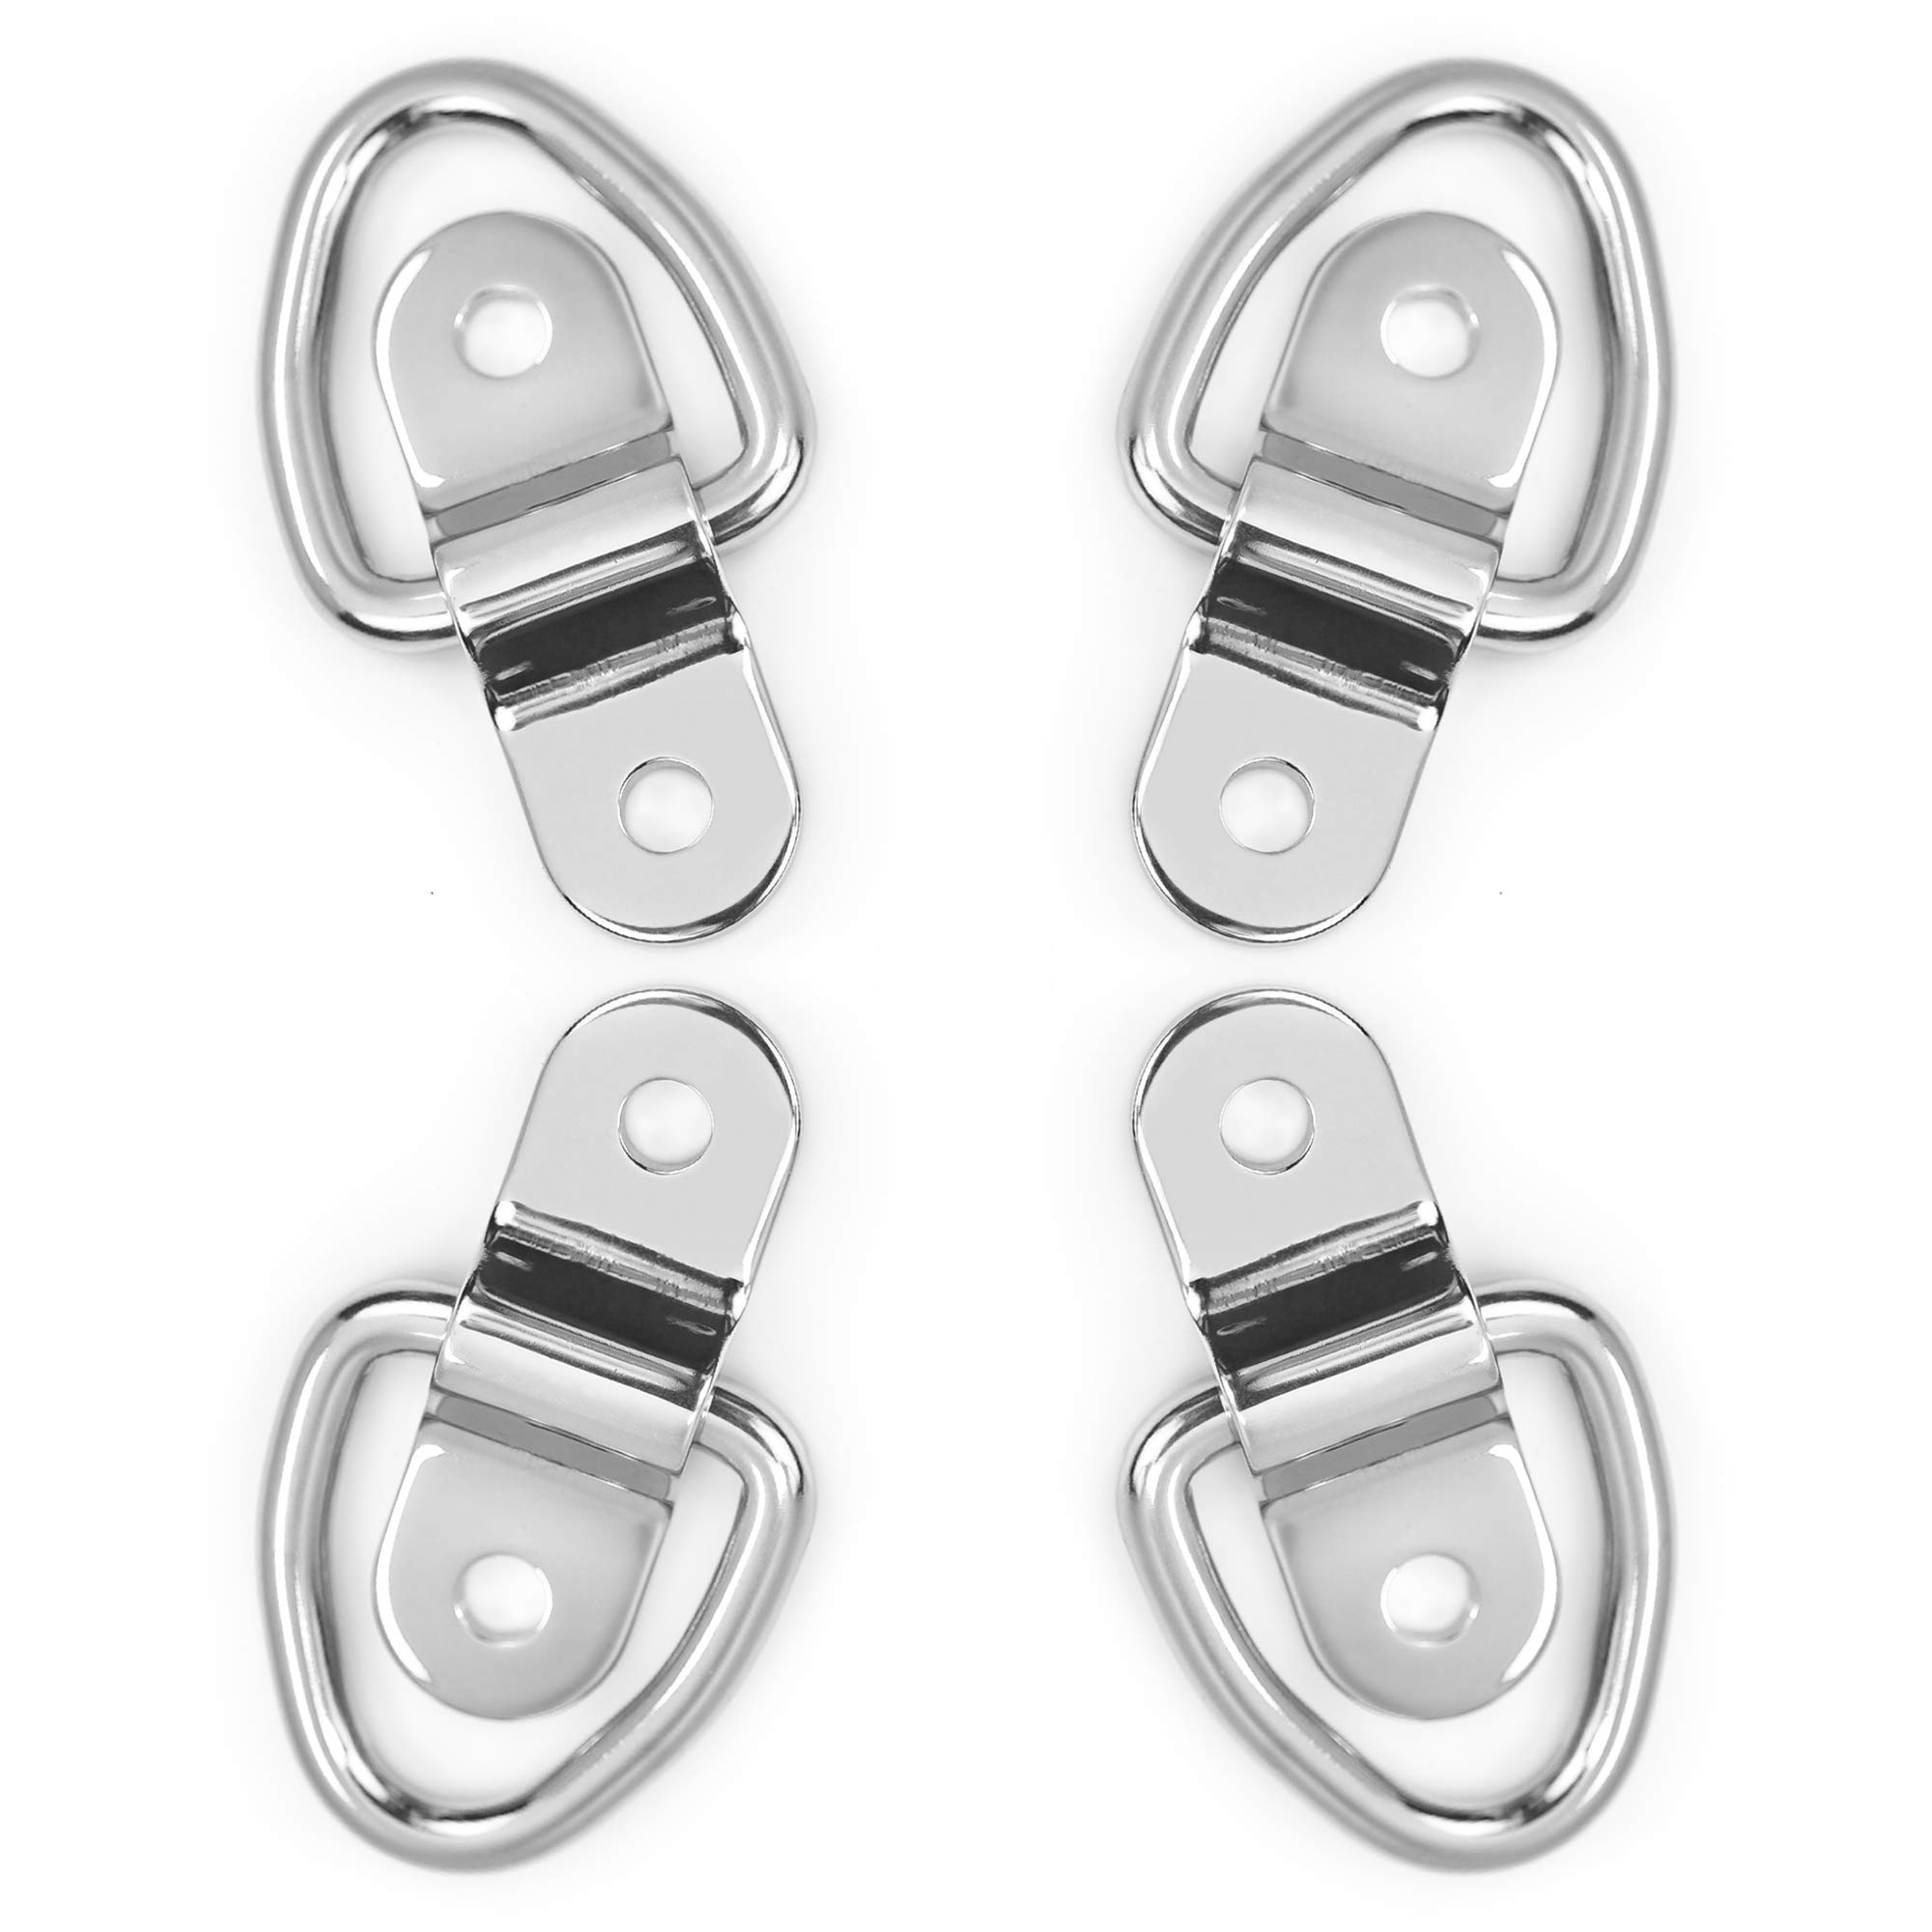 Divoti 4X Surgical Stainless Trapezoid D Ring Tie Downs Cargo Trailer Anchors Points, Surface Mounting Brackets - Surface-Mount/Bolt-on Applications by Divoti